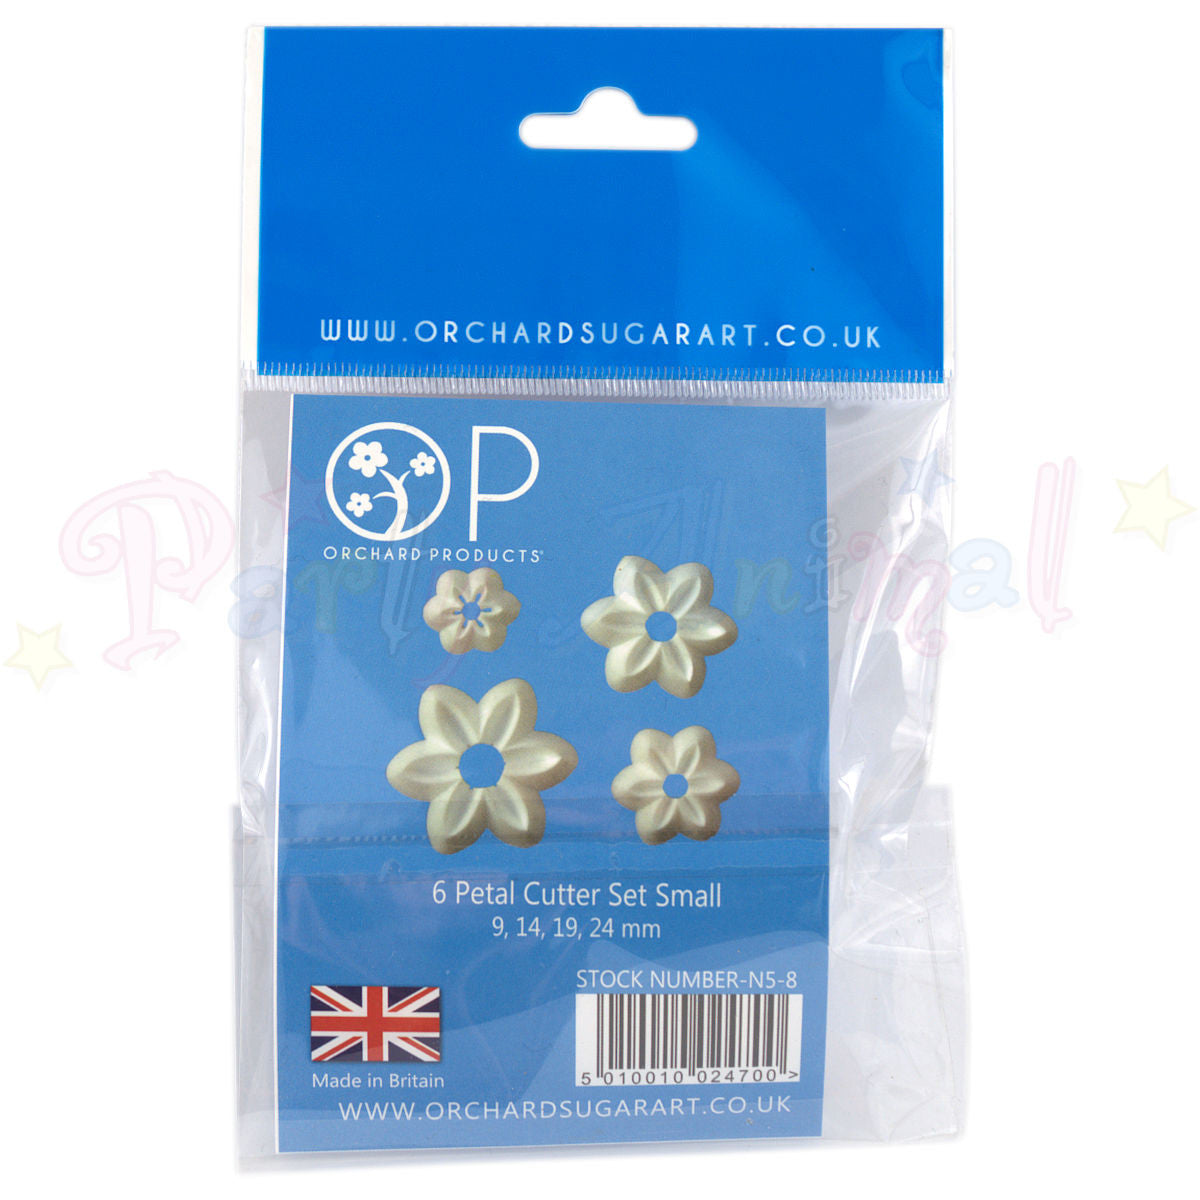 Orchard Products 6 Petal Flower Cutter Set N5, N6, N7, N8 - SMALL